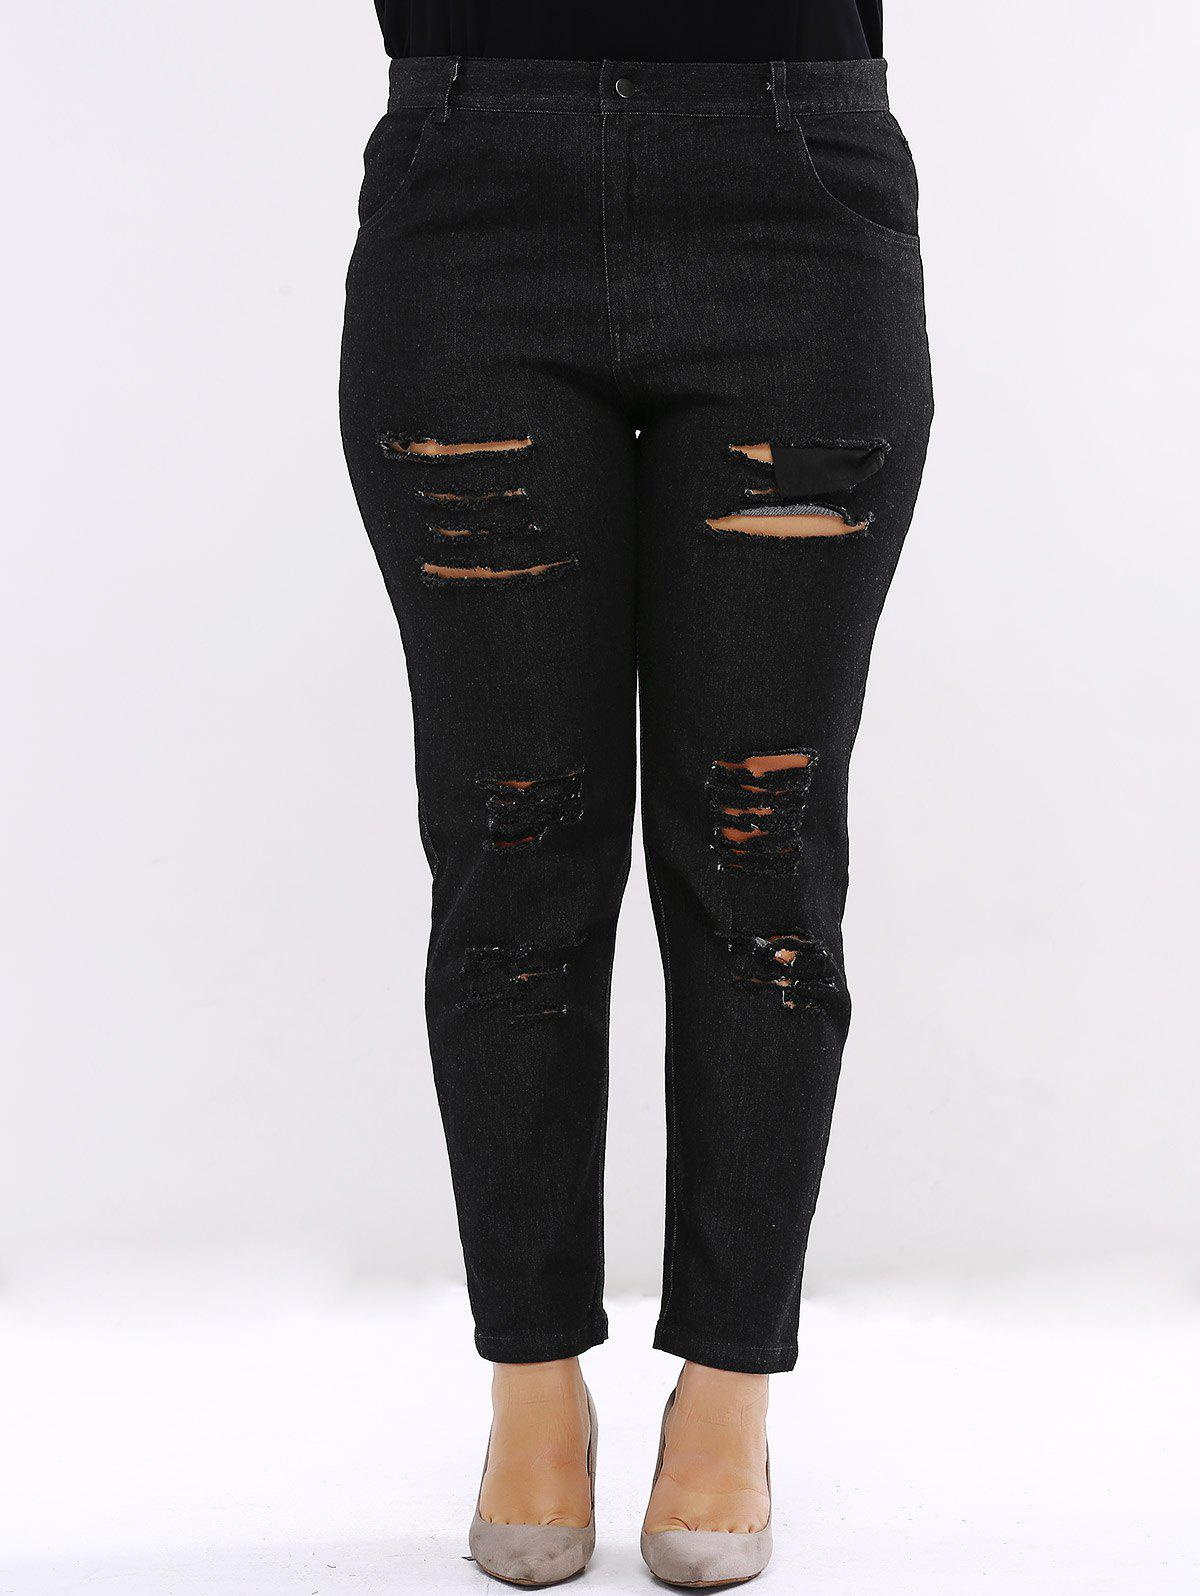 Plus Size Chic Ripped Black Jeans - BLACK 5XL